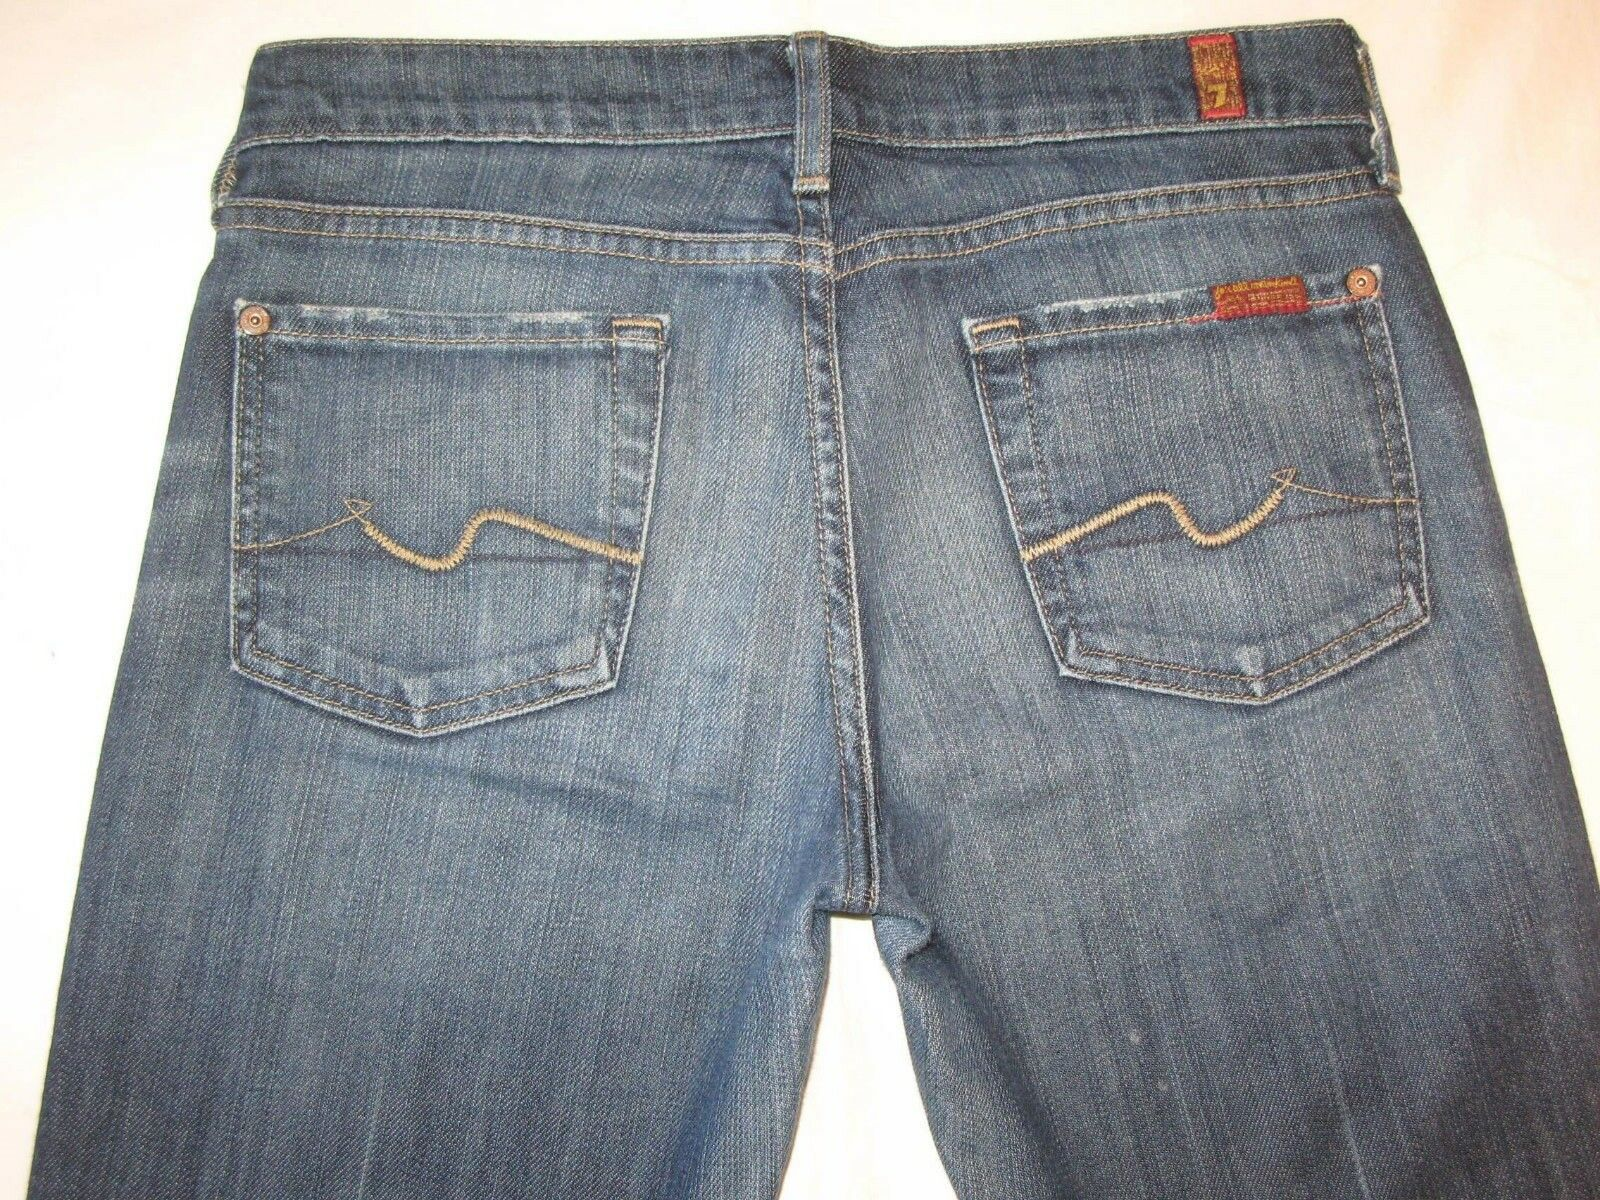 7 for all Mankind Bootcut jeans Woman Sz 26 w Stretch Distressed Wash